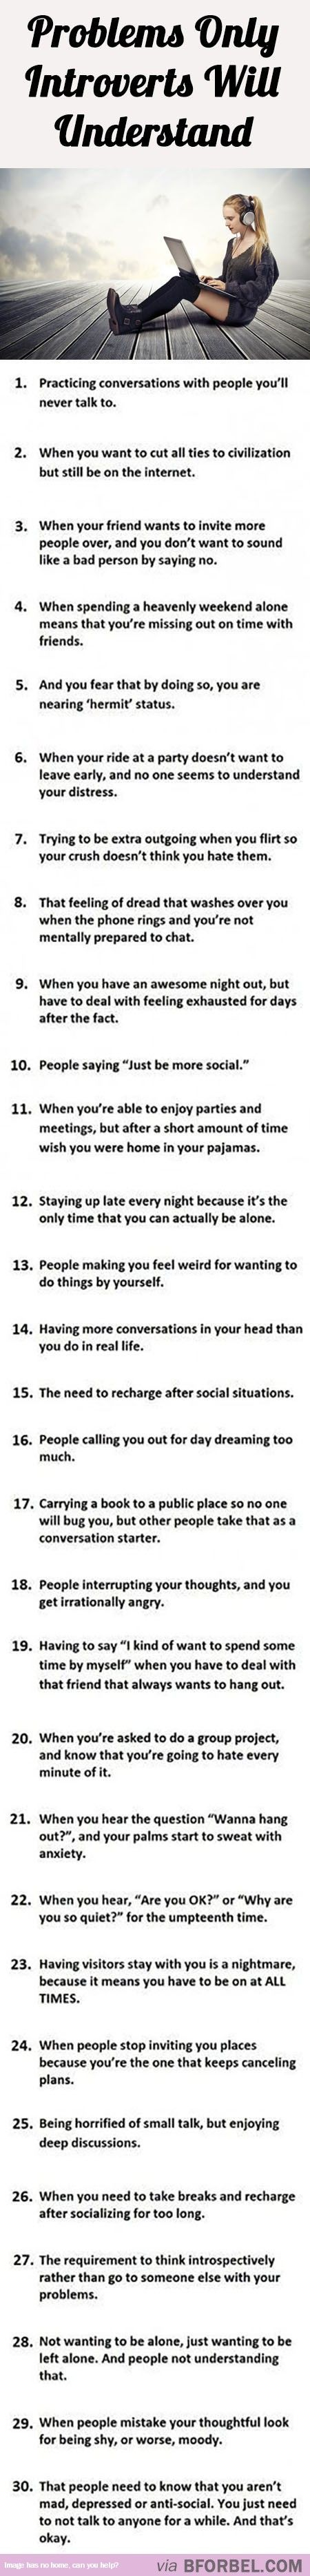 Yes I did understand many of these - 30 Problems Only Introverts Will Understand.